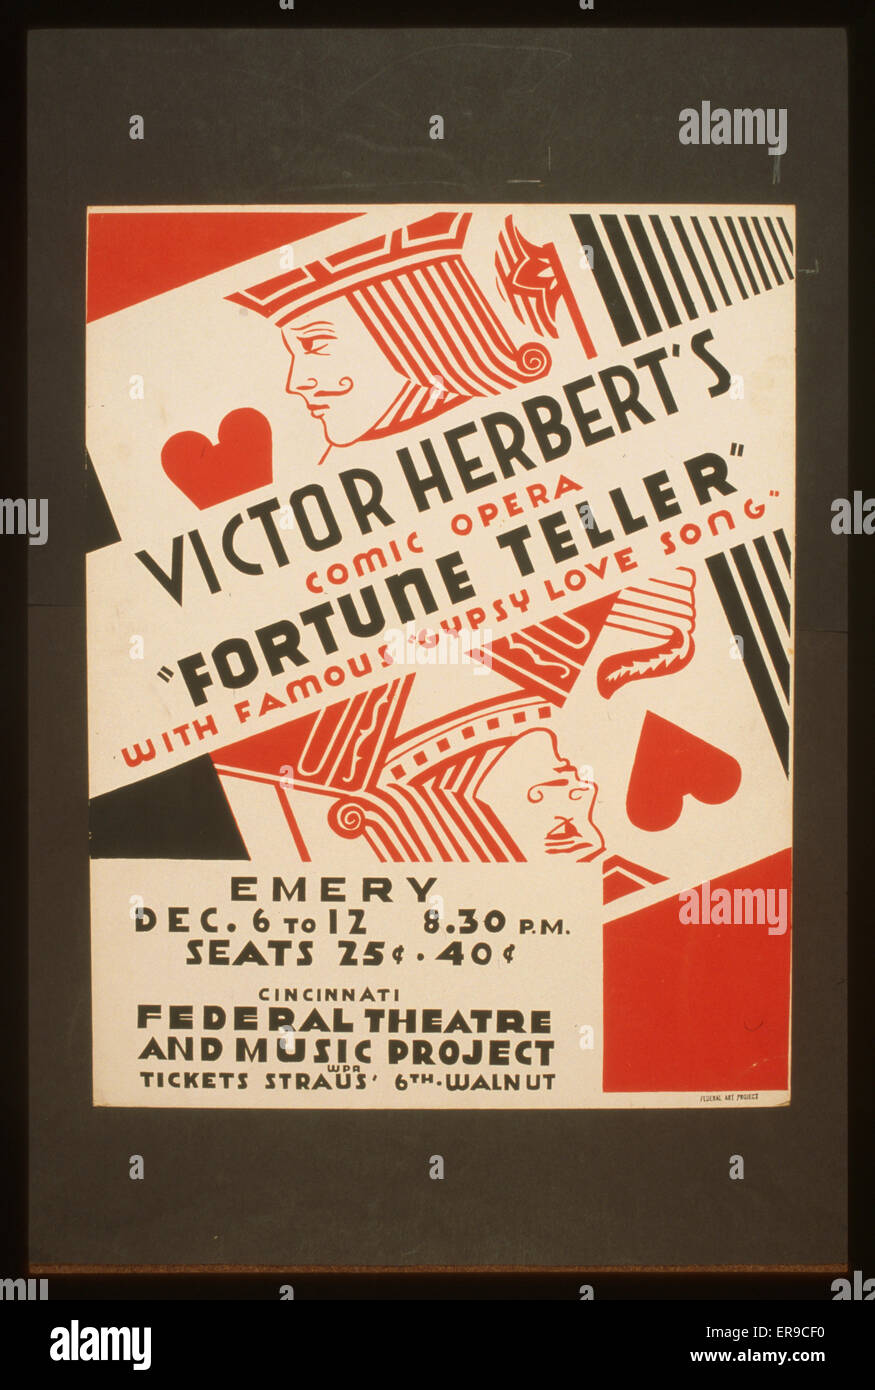 Victor Herbert's comic opera Fortune teller with famous gypsy love song. Poster for Federal Theatre and Music - Stock Image